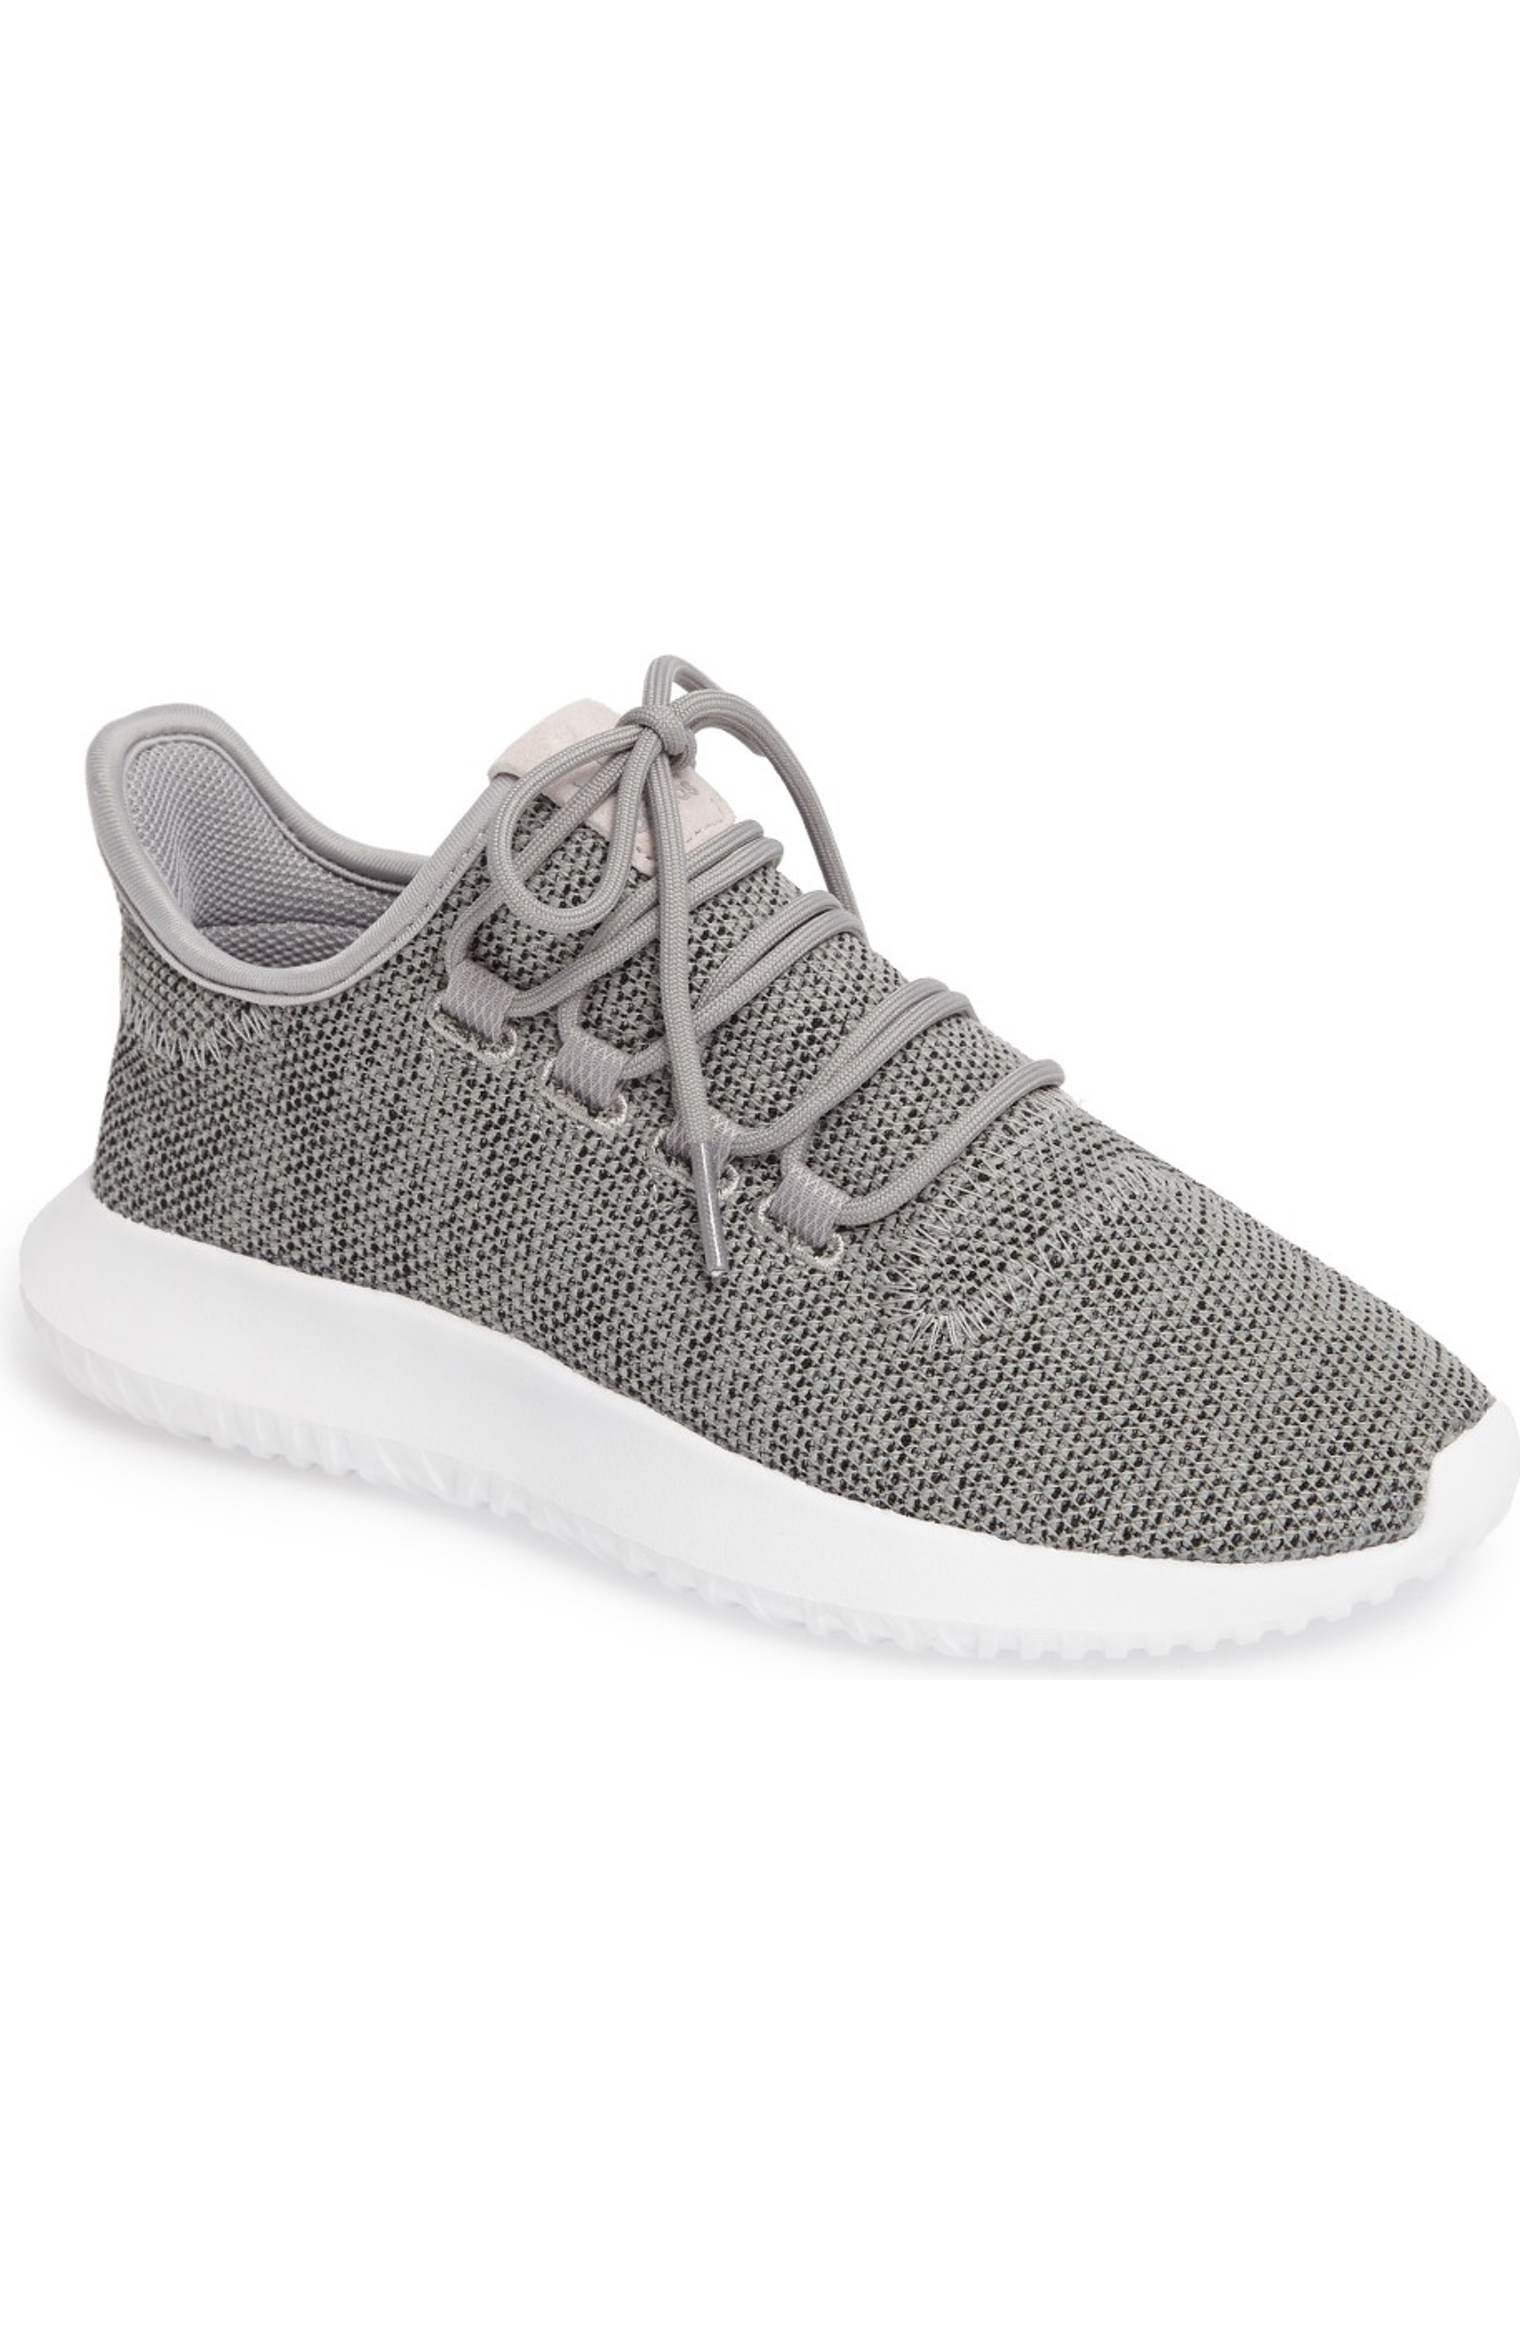 c15a86c65b6 Main Image - adidas Tubular Shadow Sneaker (Women) https   tmblr.